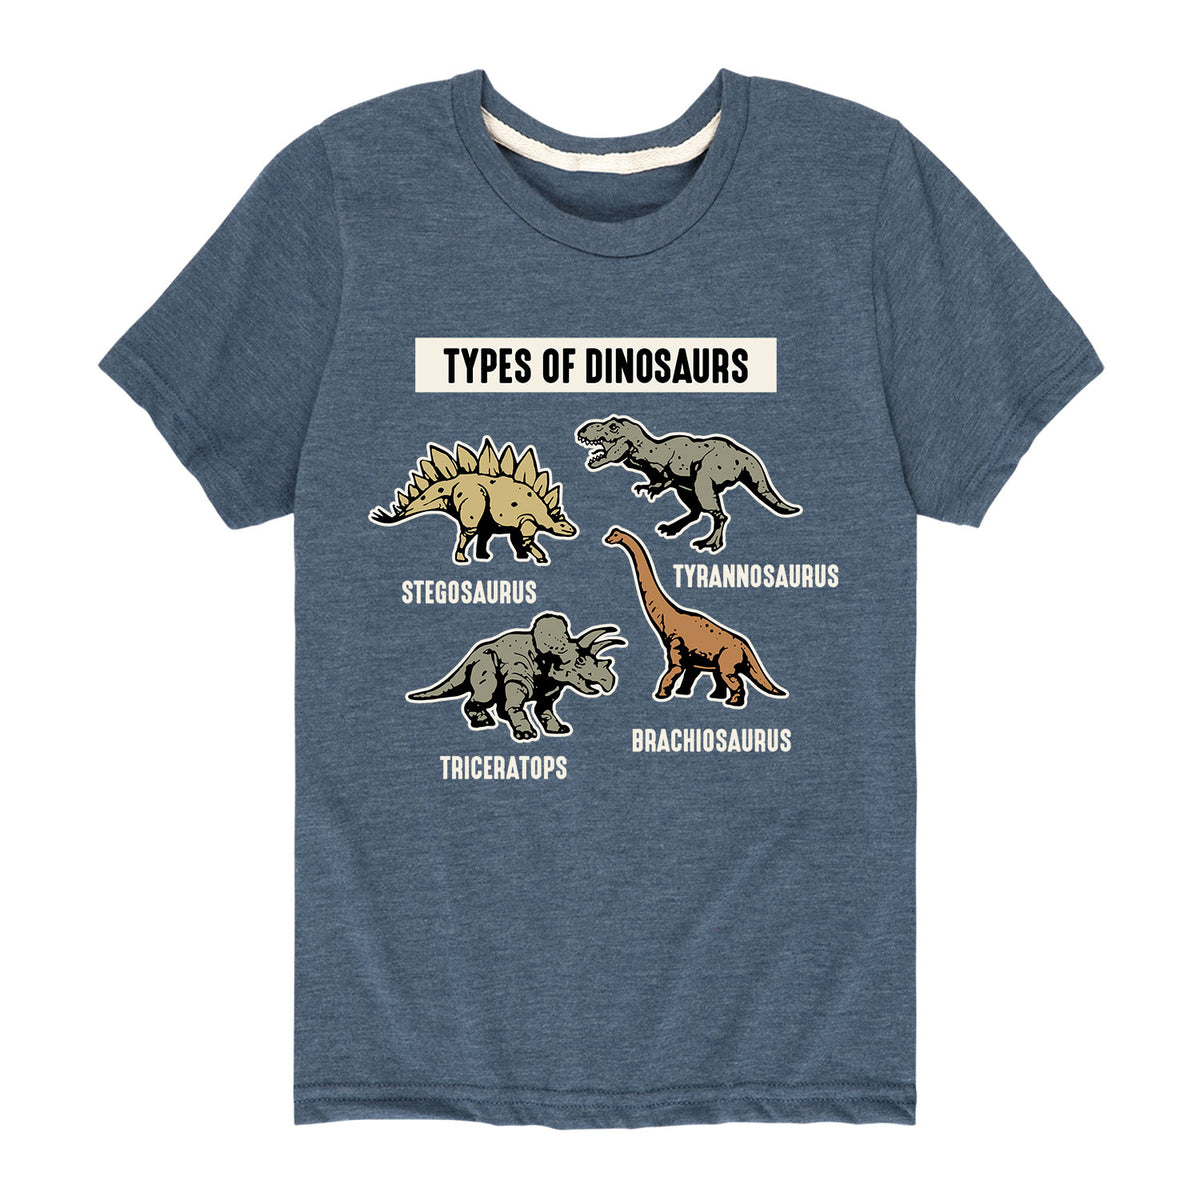 Types of Dinosaurs - Youth & Toddler Short Sleeve T-Shirt